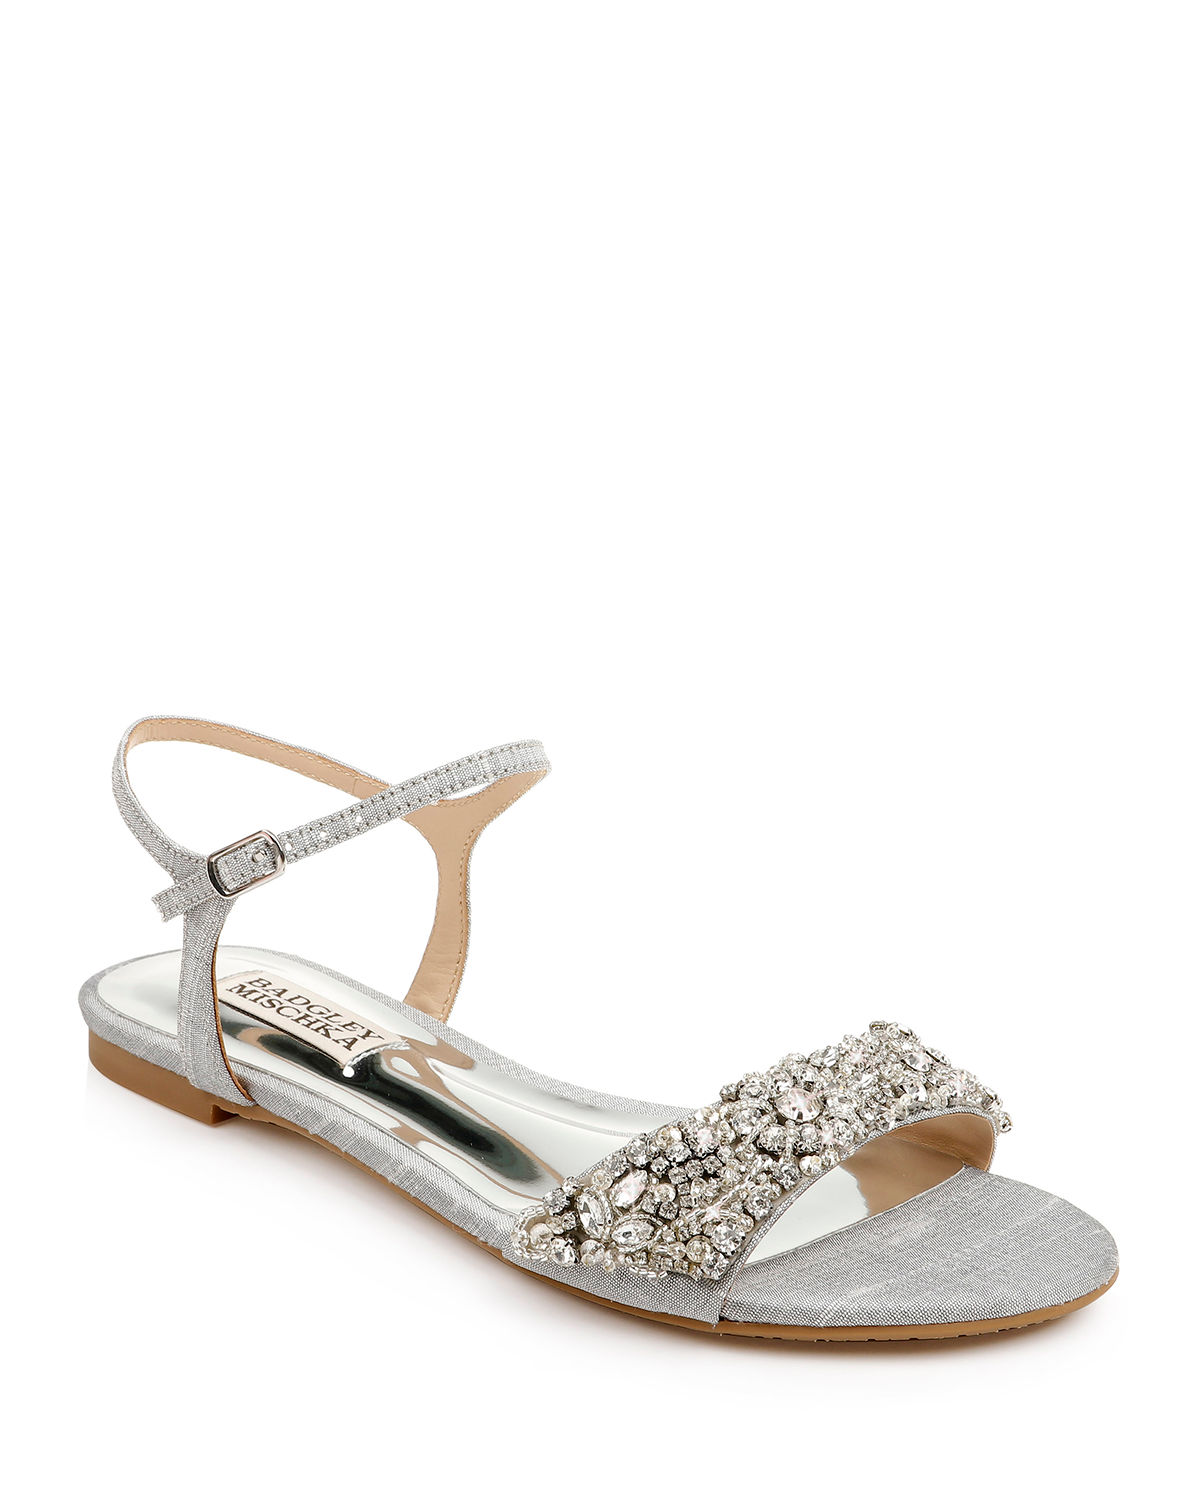 Badgley Mischka Flats CARMELLA BEJEWELED SILK FLAT SANDALS